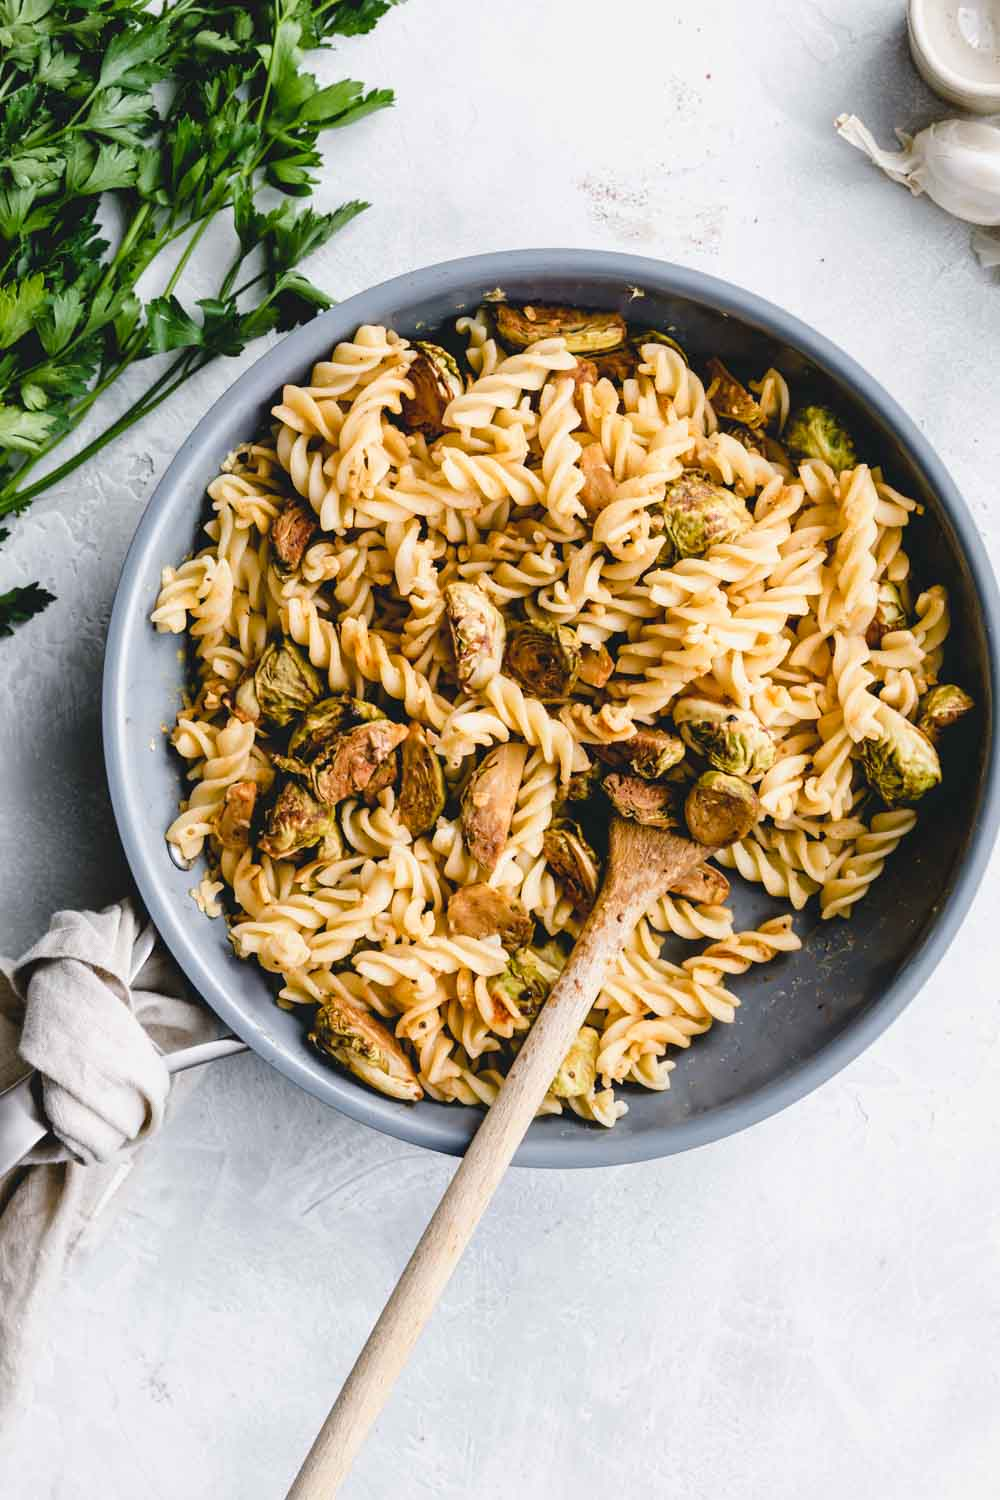 Brussels sprout pasta in a blue pan with a wooden spoon on a white backdrop